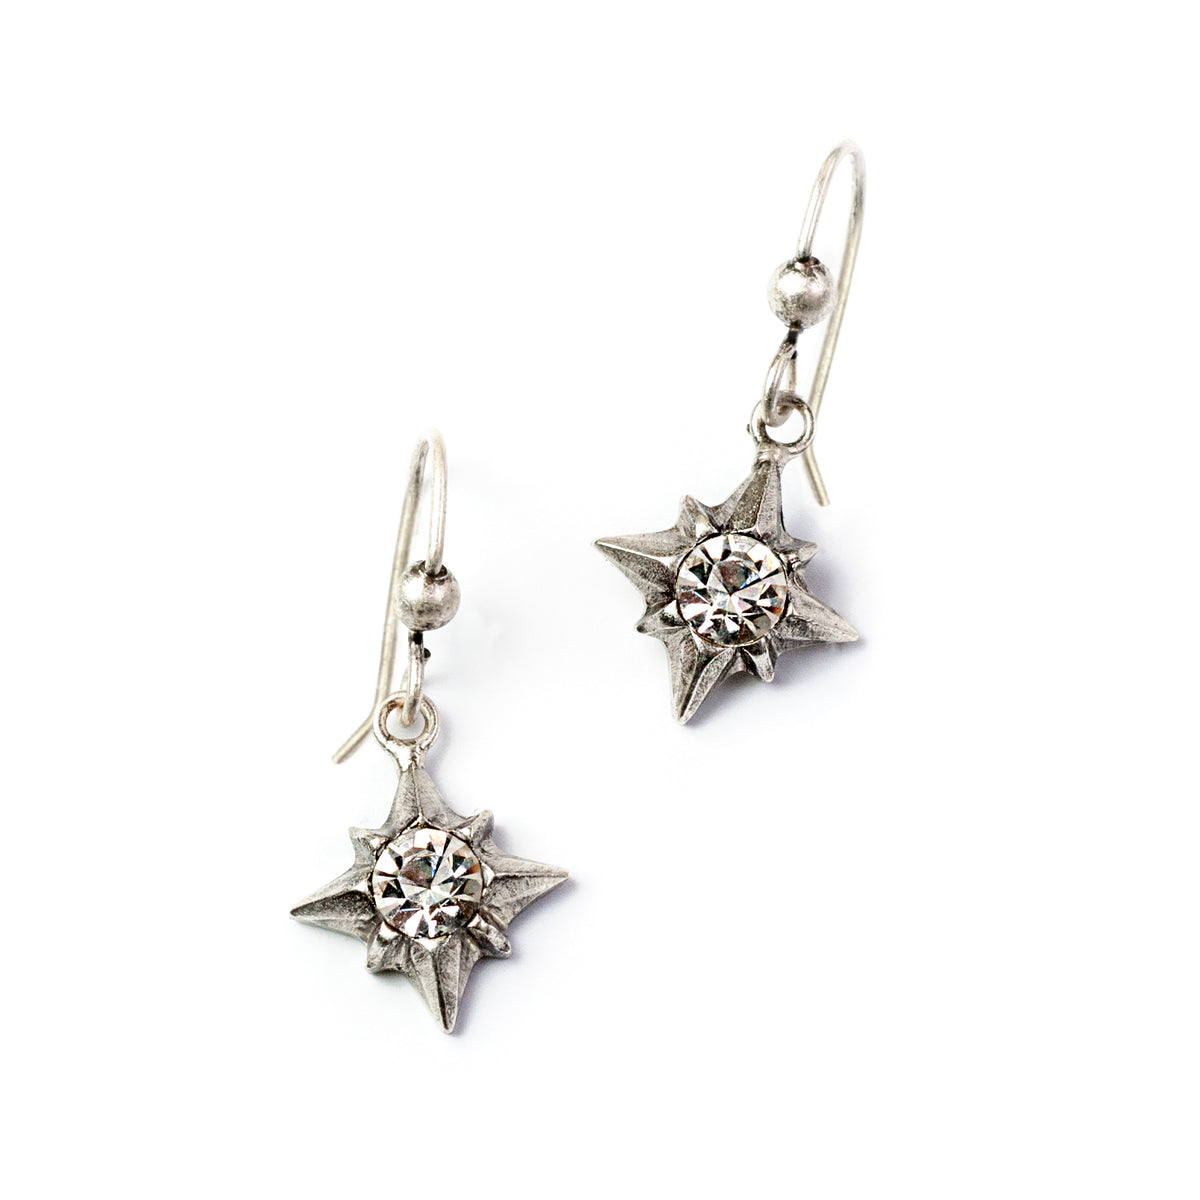 Delicate Dainty Star Earrings E1496